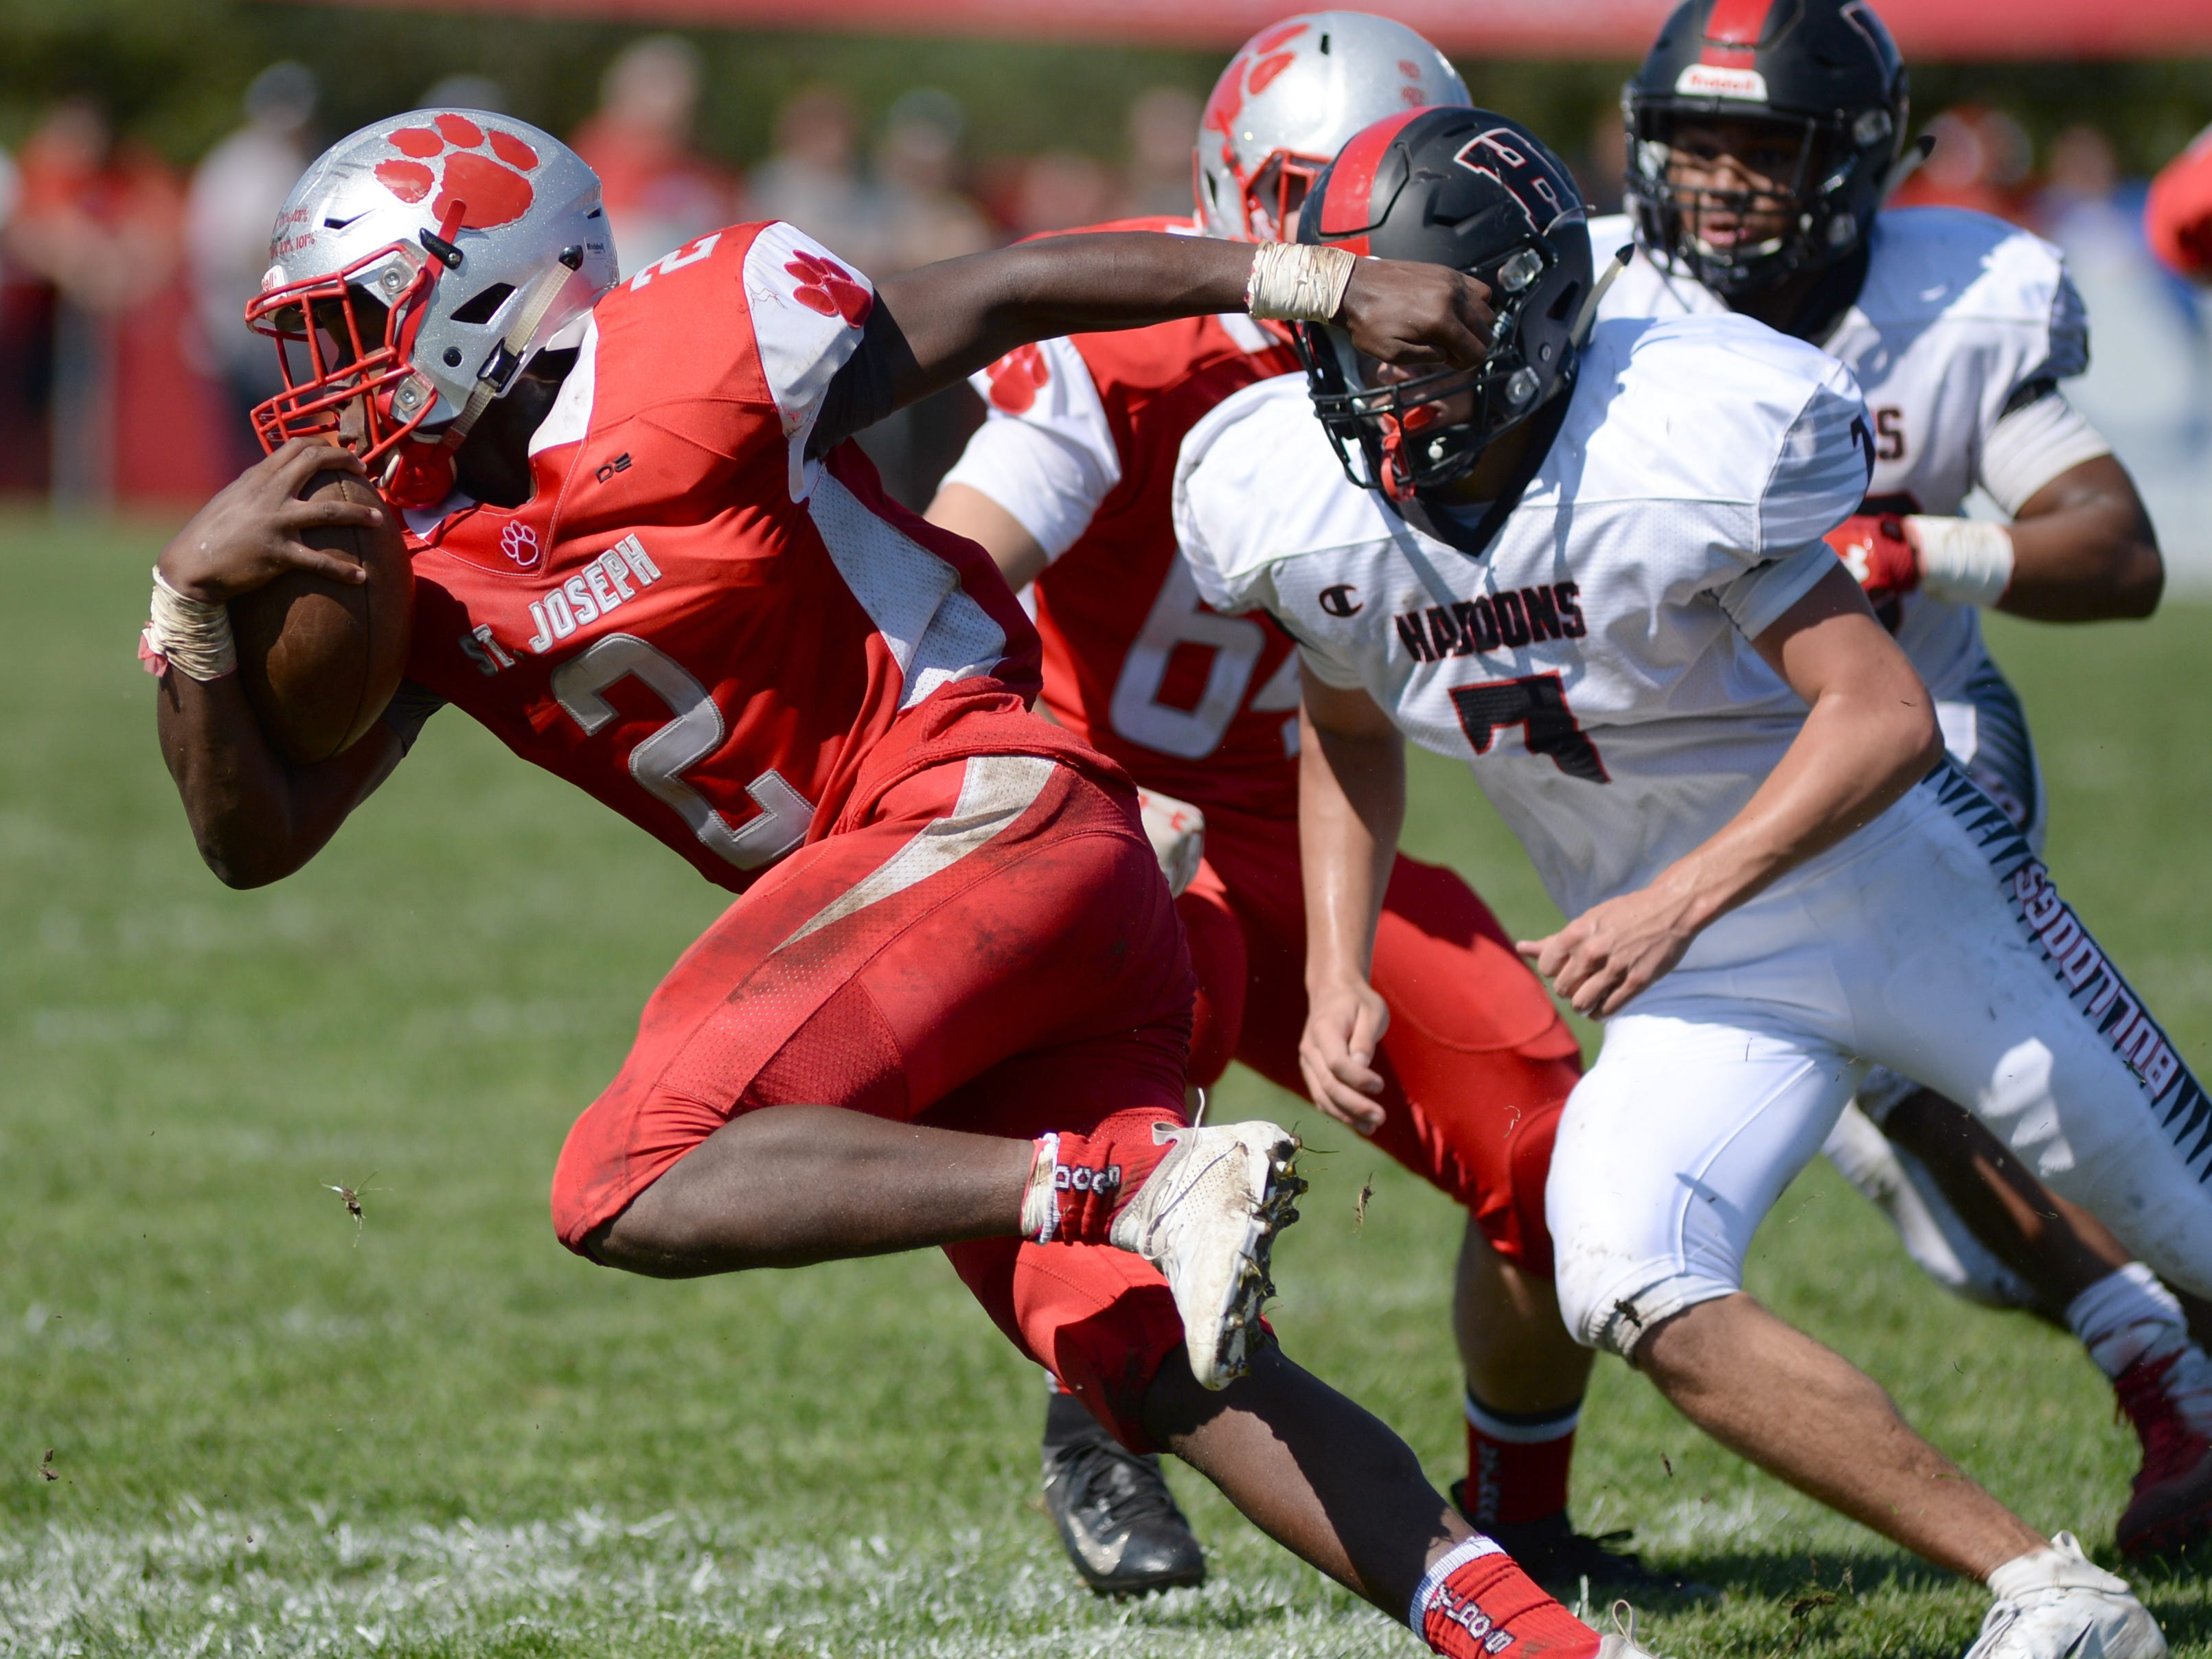 St. Joseph's Ahmad Ross carries the ball during Saturday's game against Haddonfield, Sept. 29, 2018.